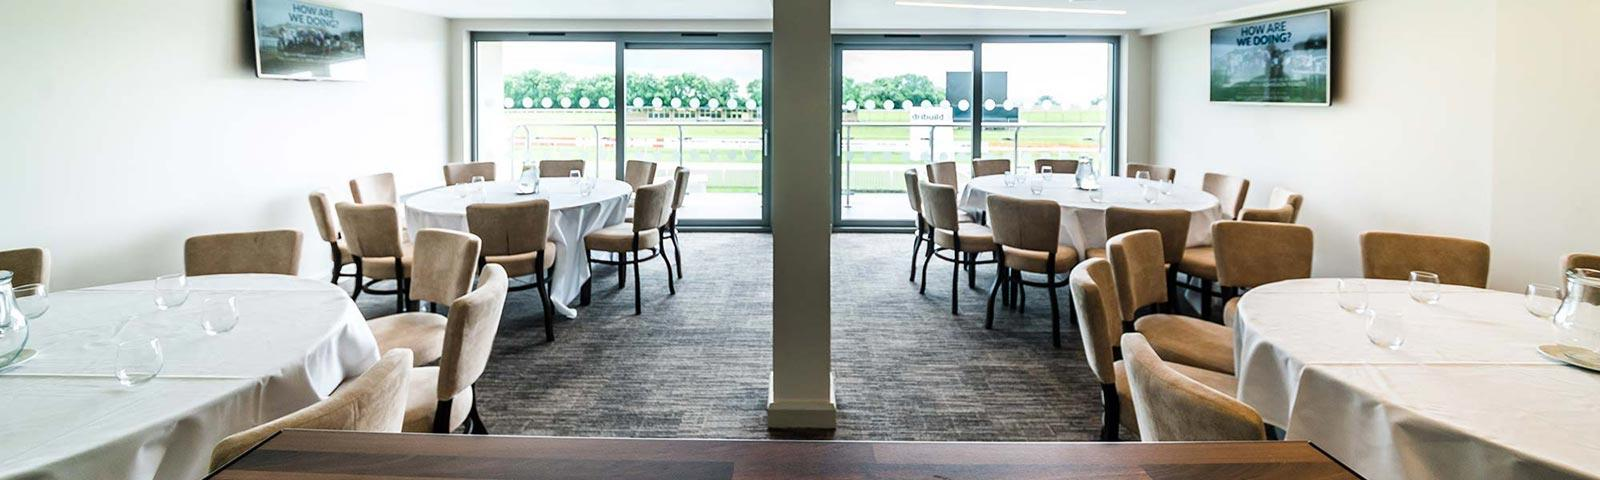 Private room at Bath Racecourse set up with tables and chairs.